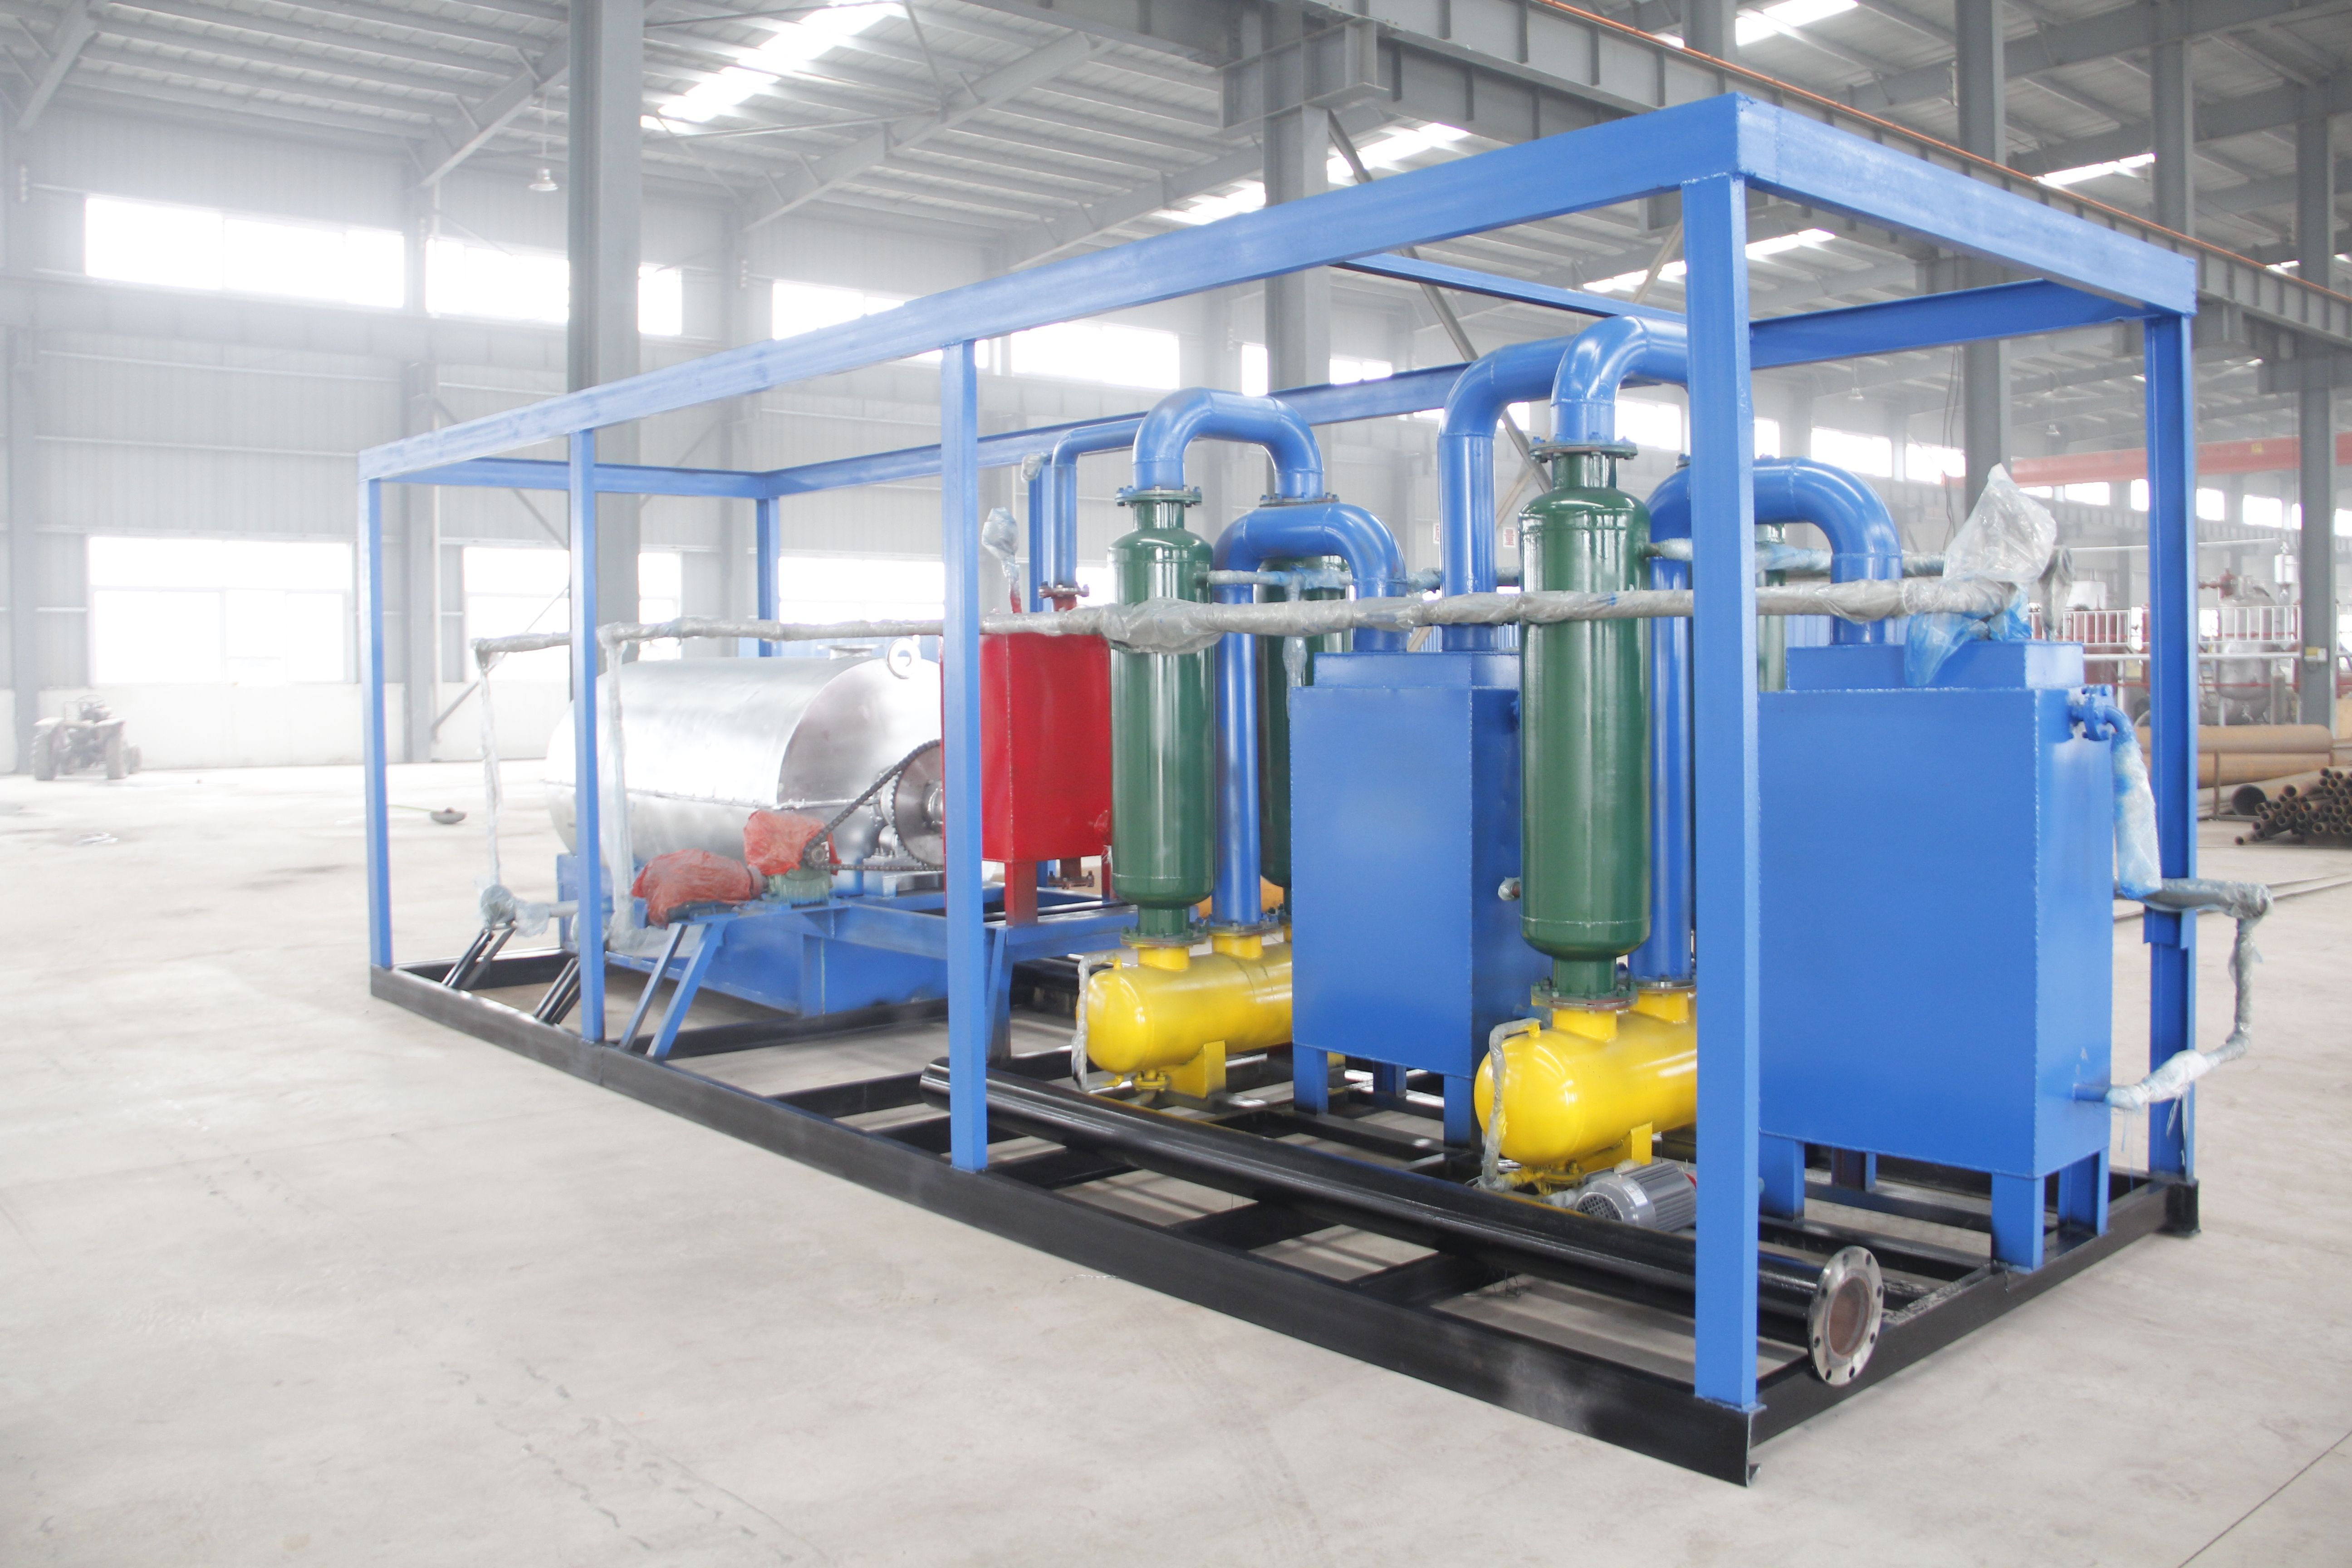 200-300kg small unit waste tyre pyrolysis plant The waste tyre